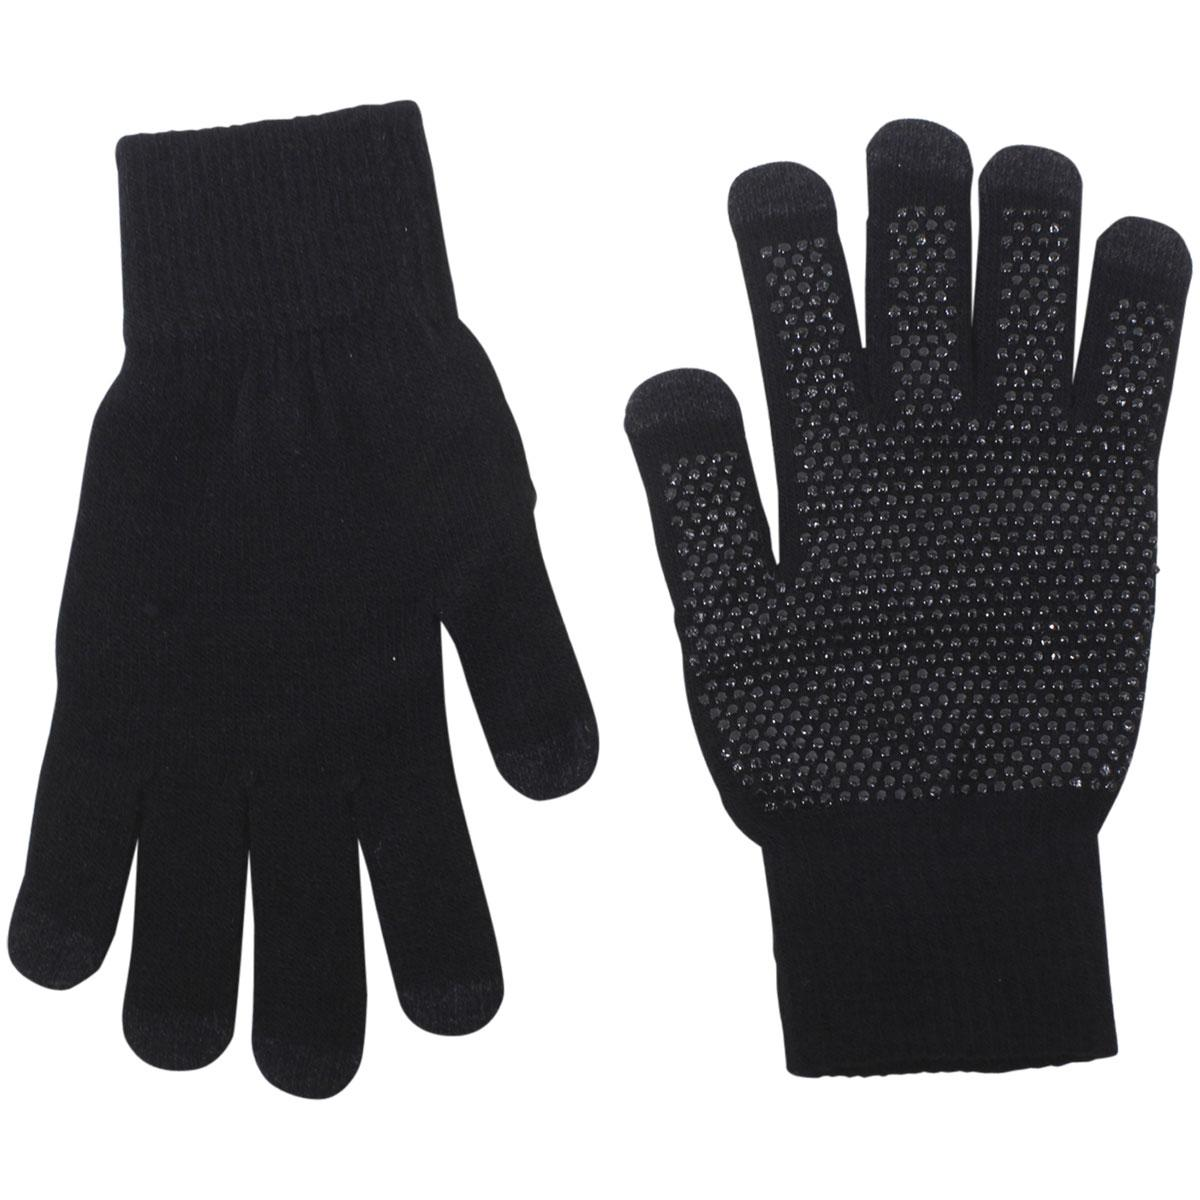 Image of Dorfman Pacific Men's Touchscreen Knit Gloves - Black - One Size Fits Most